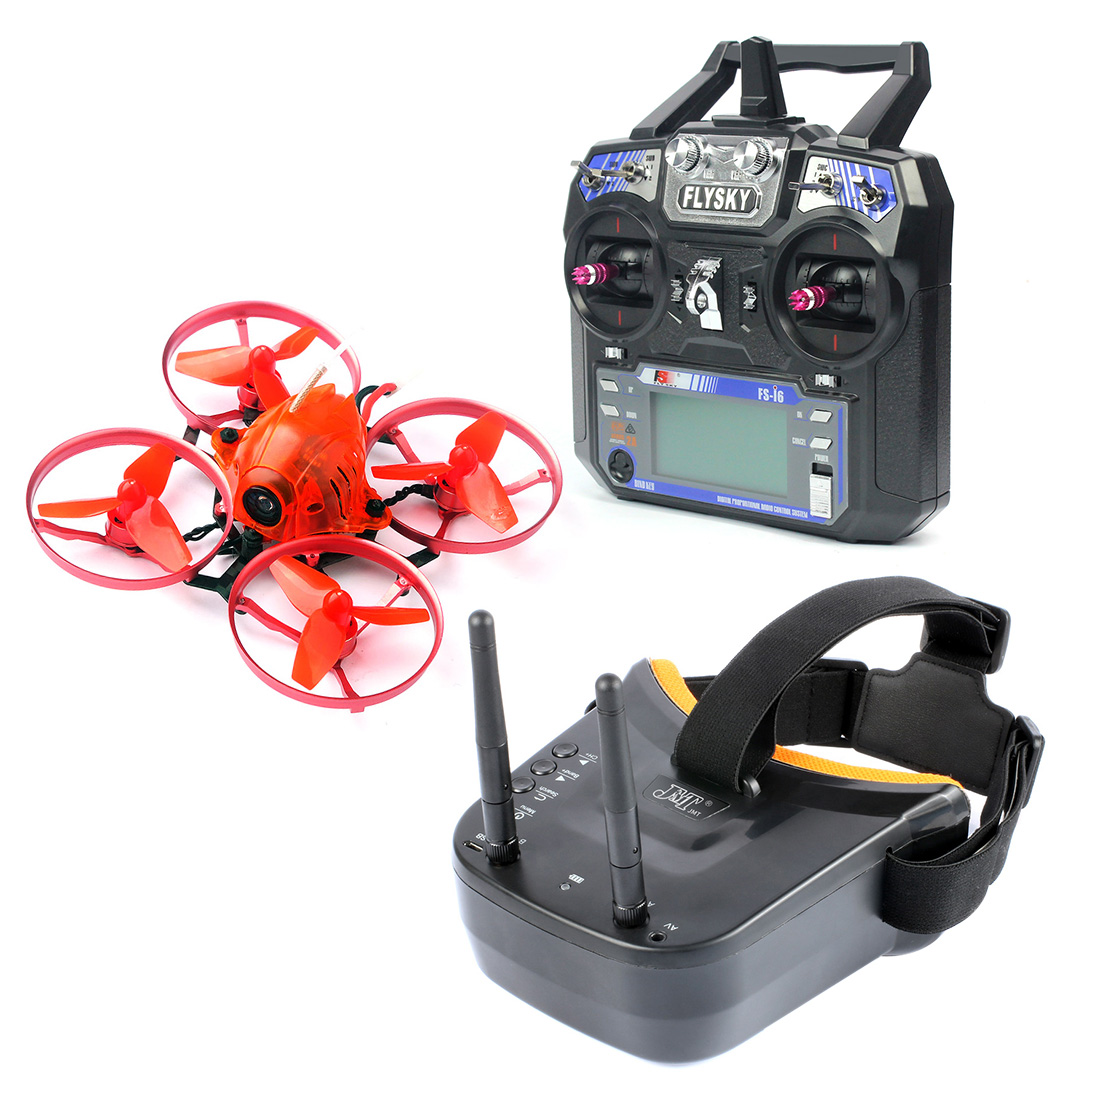 Snapper7 Brushless Micro 75mm 5.8G FPV Racer Drone 2.4G 6CH RC Quadcopter RTF 700TVL Camera VTX & Double Antenna Mini Goggles jmt snapper7 brushless whoopi aircraft bnf micro 75mm fpv racer quadcopter 4in1 crazybee f3 fc flysky frsky rx 700tvl camera vtx